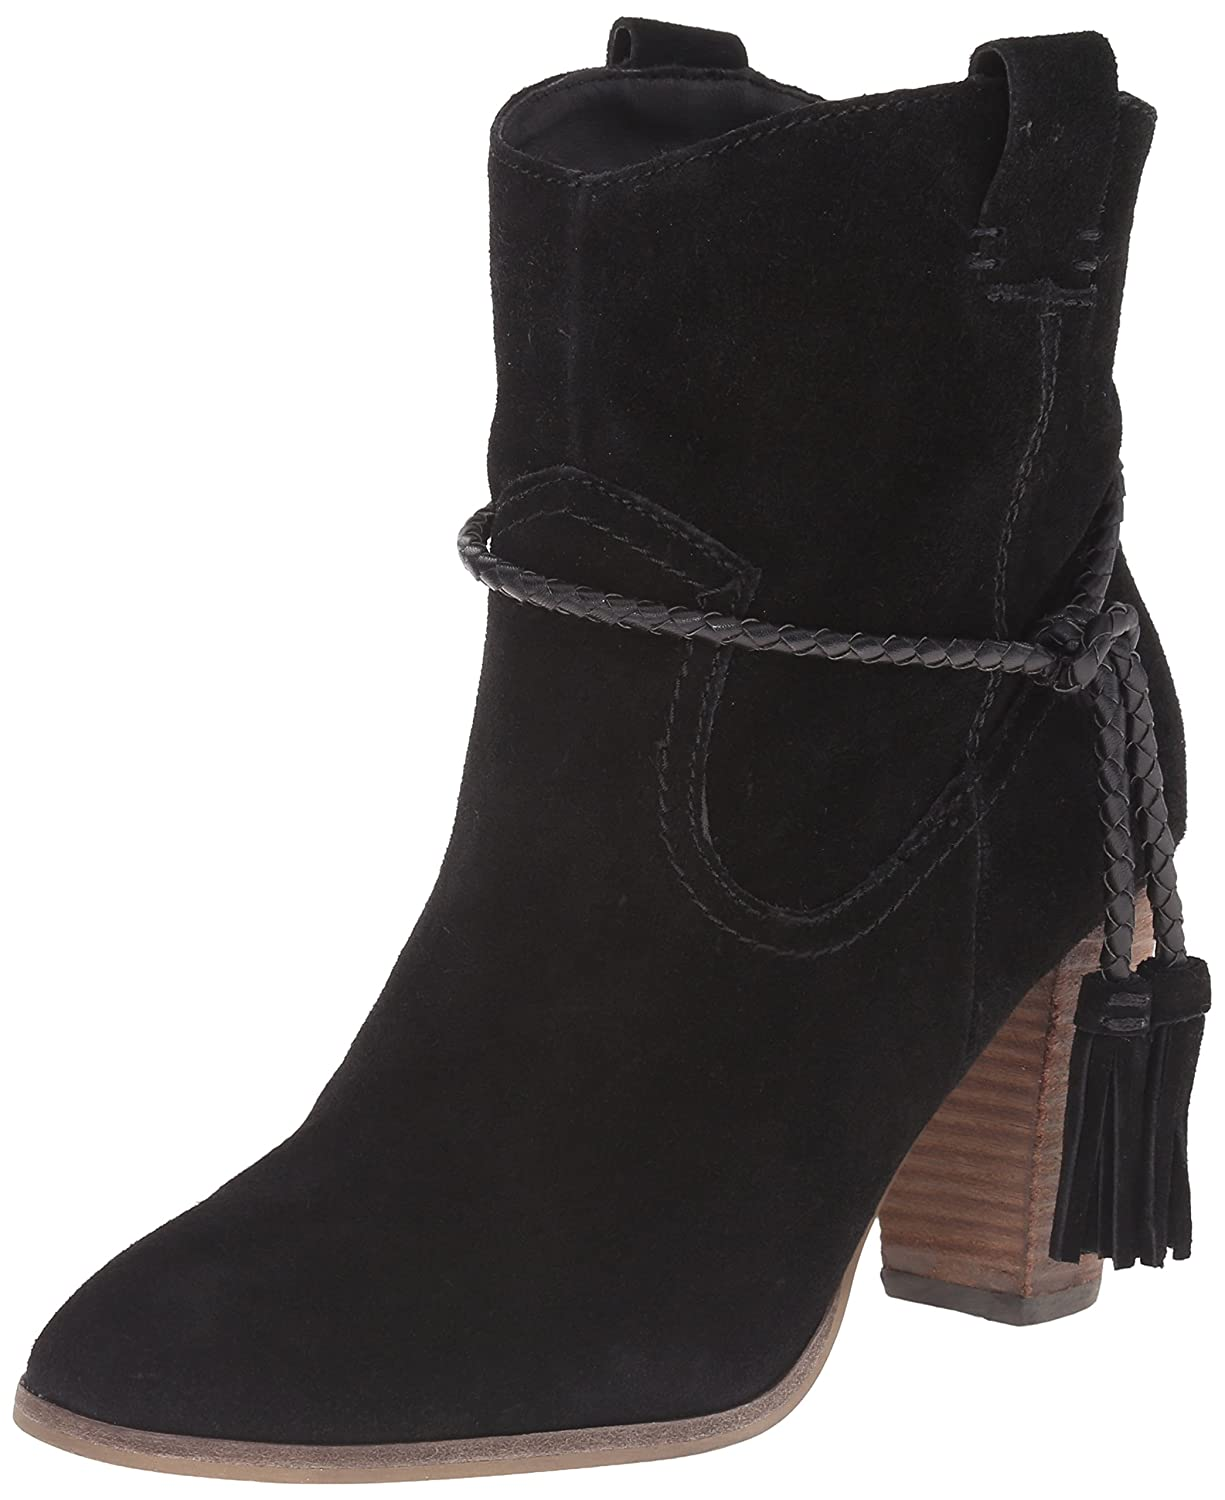 Dolce Vita Women's Melah Boot B01034Y78S 10 B(M) US|Black